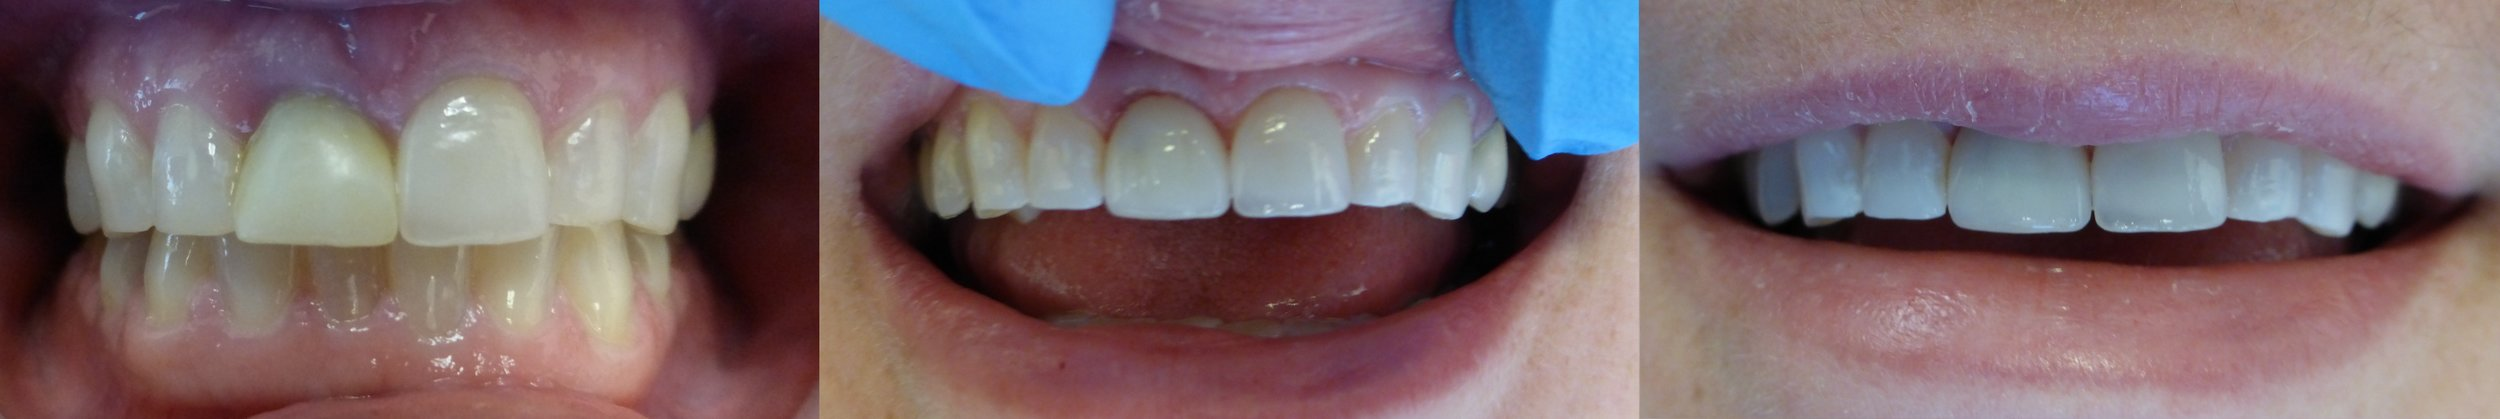 Dental implant results from Rancho Santa Fe Cosmetic & Family Dentistry